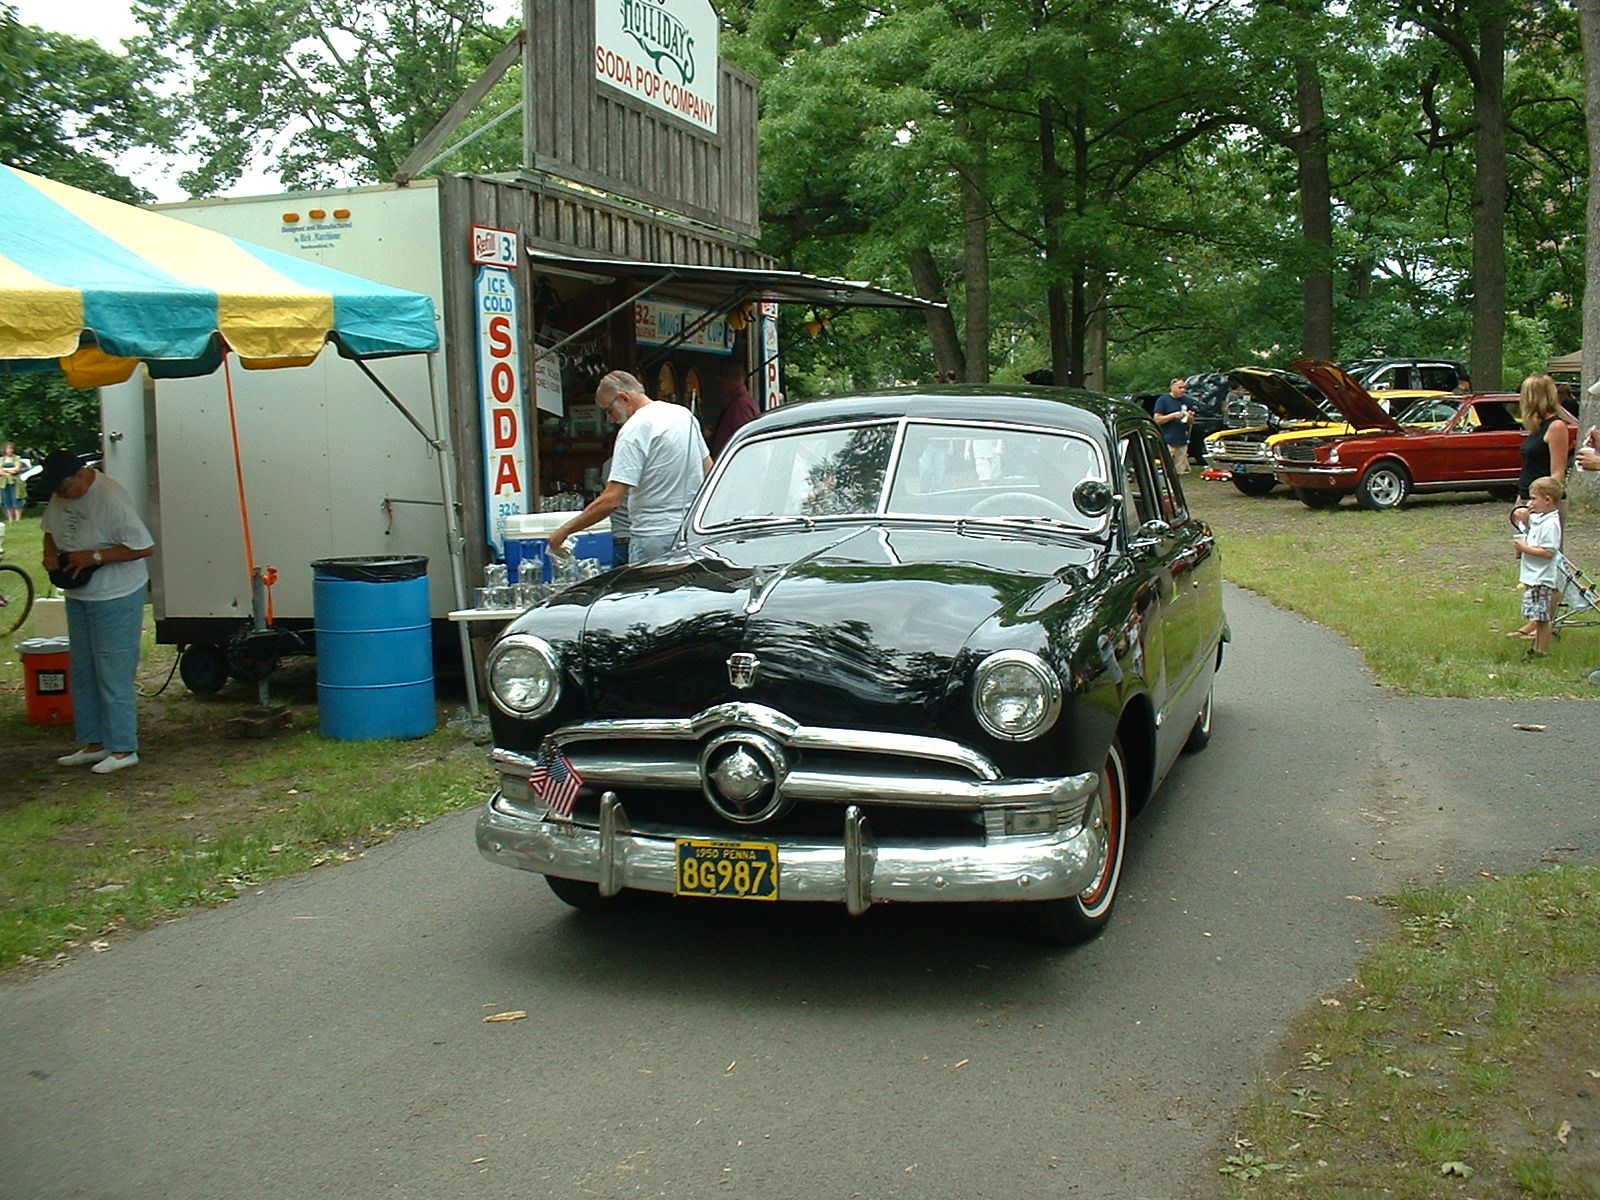 frank 39 s place nay aug park car show. Black Bedroom Furniture Sets. Home Design Ideas